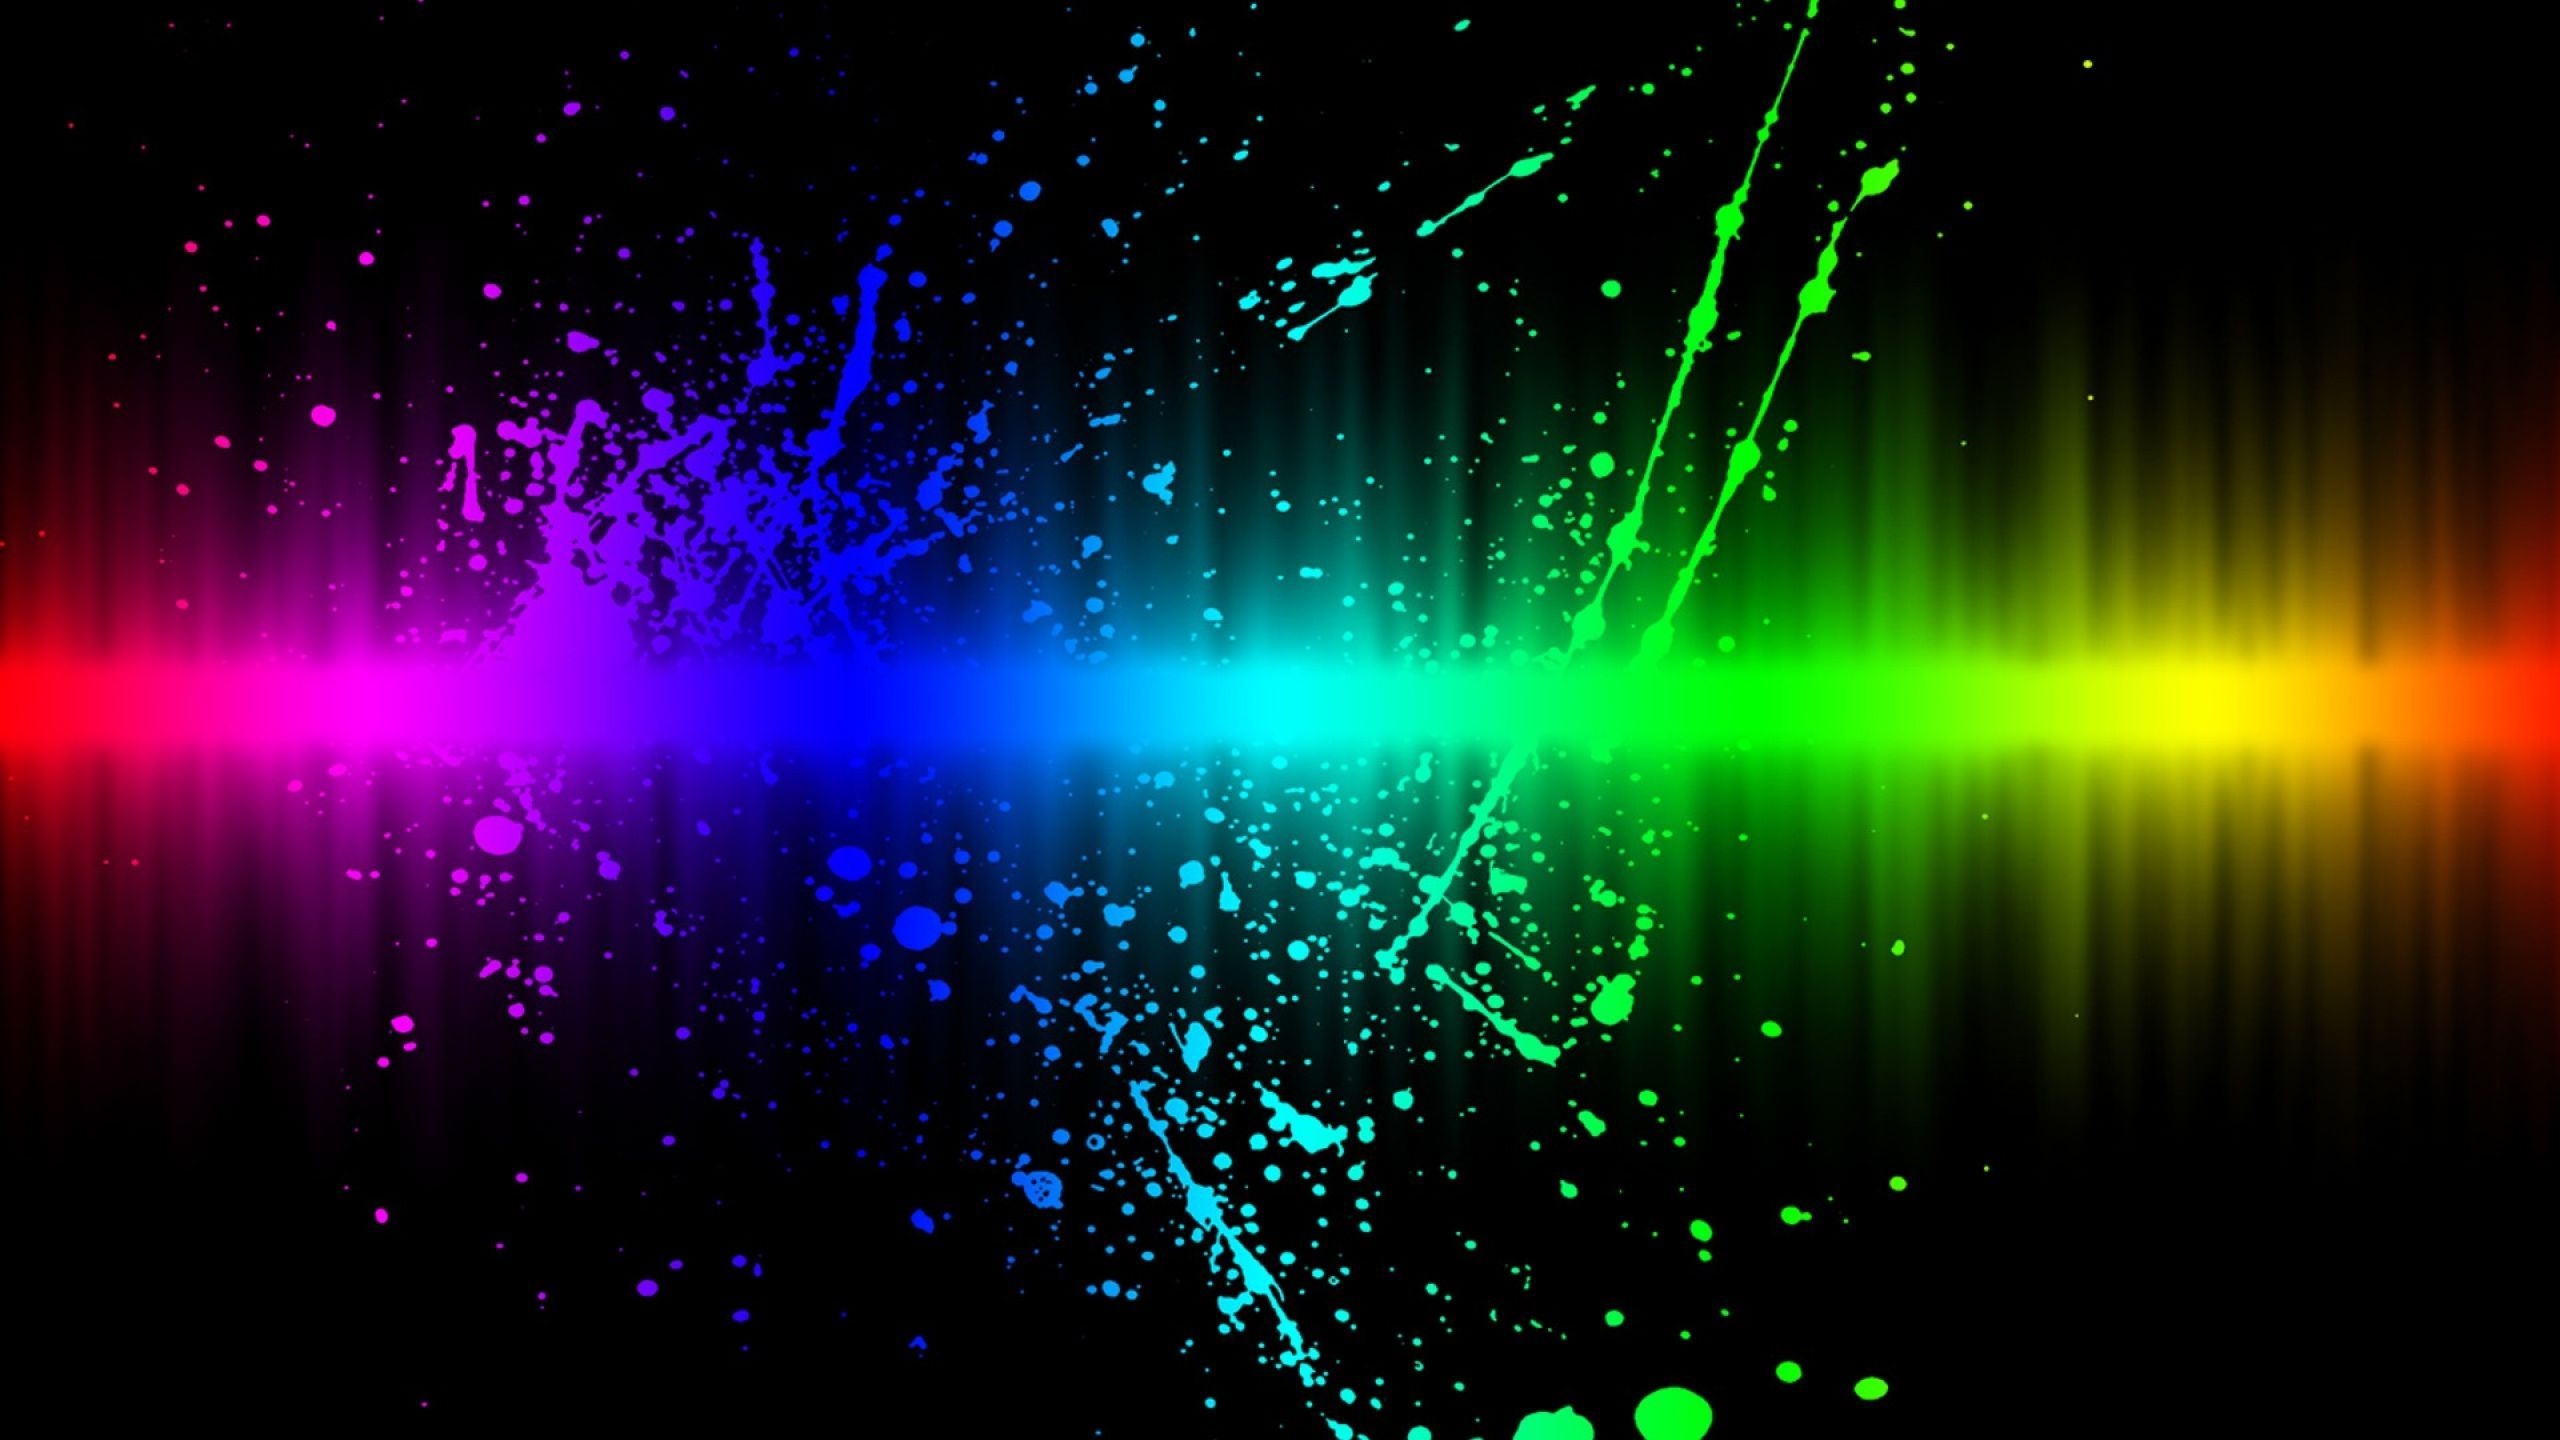 My Background Rainbow Wallpaper Cool Desktop Backgrounds Colorful Wallpaper